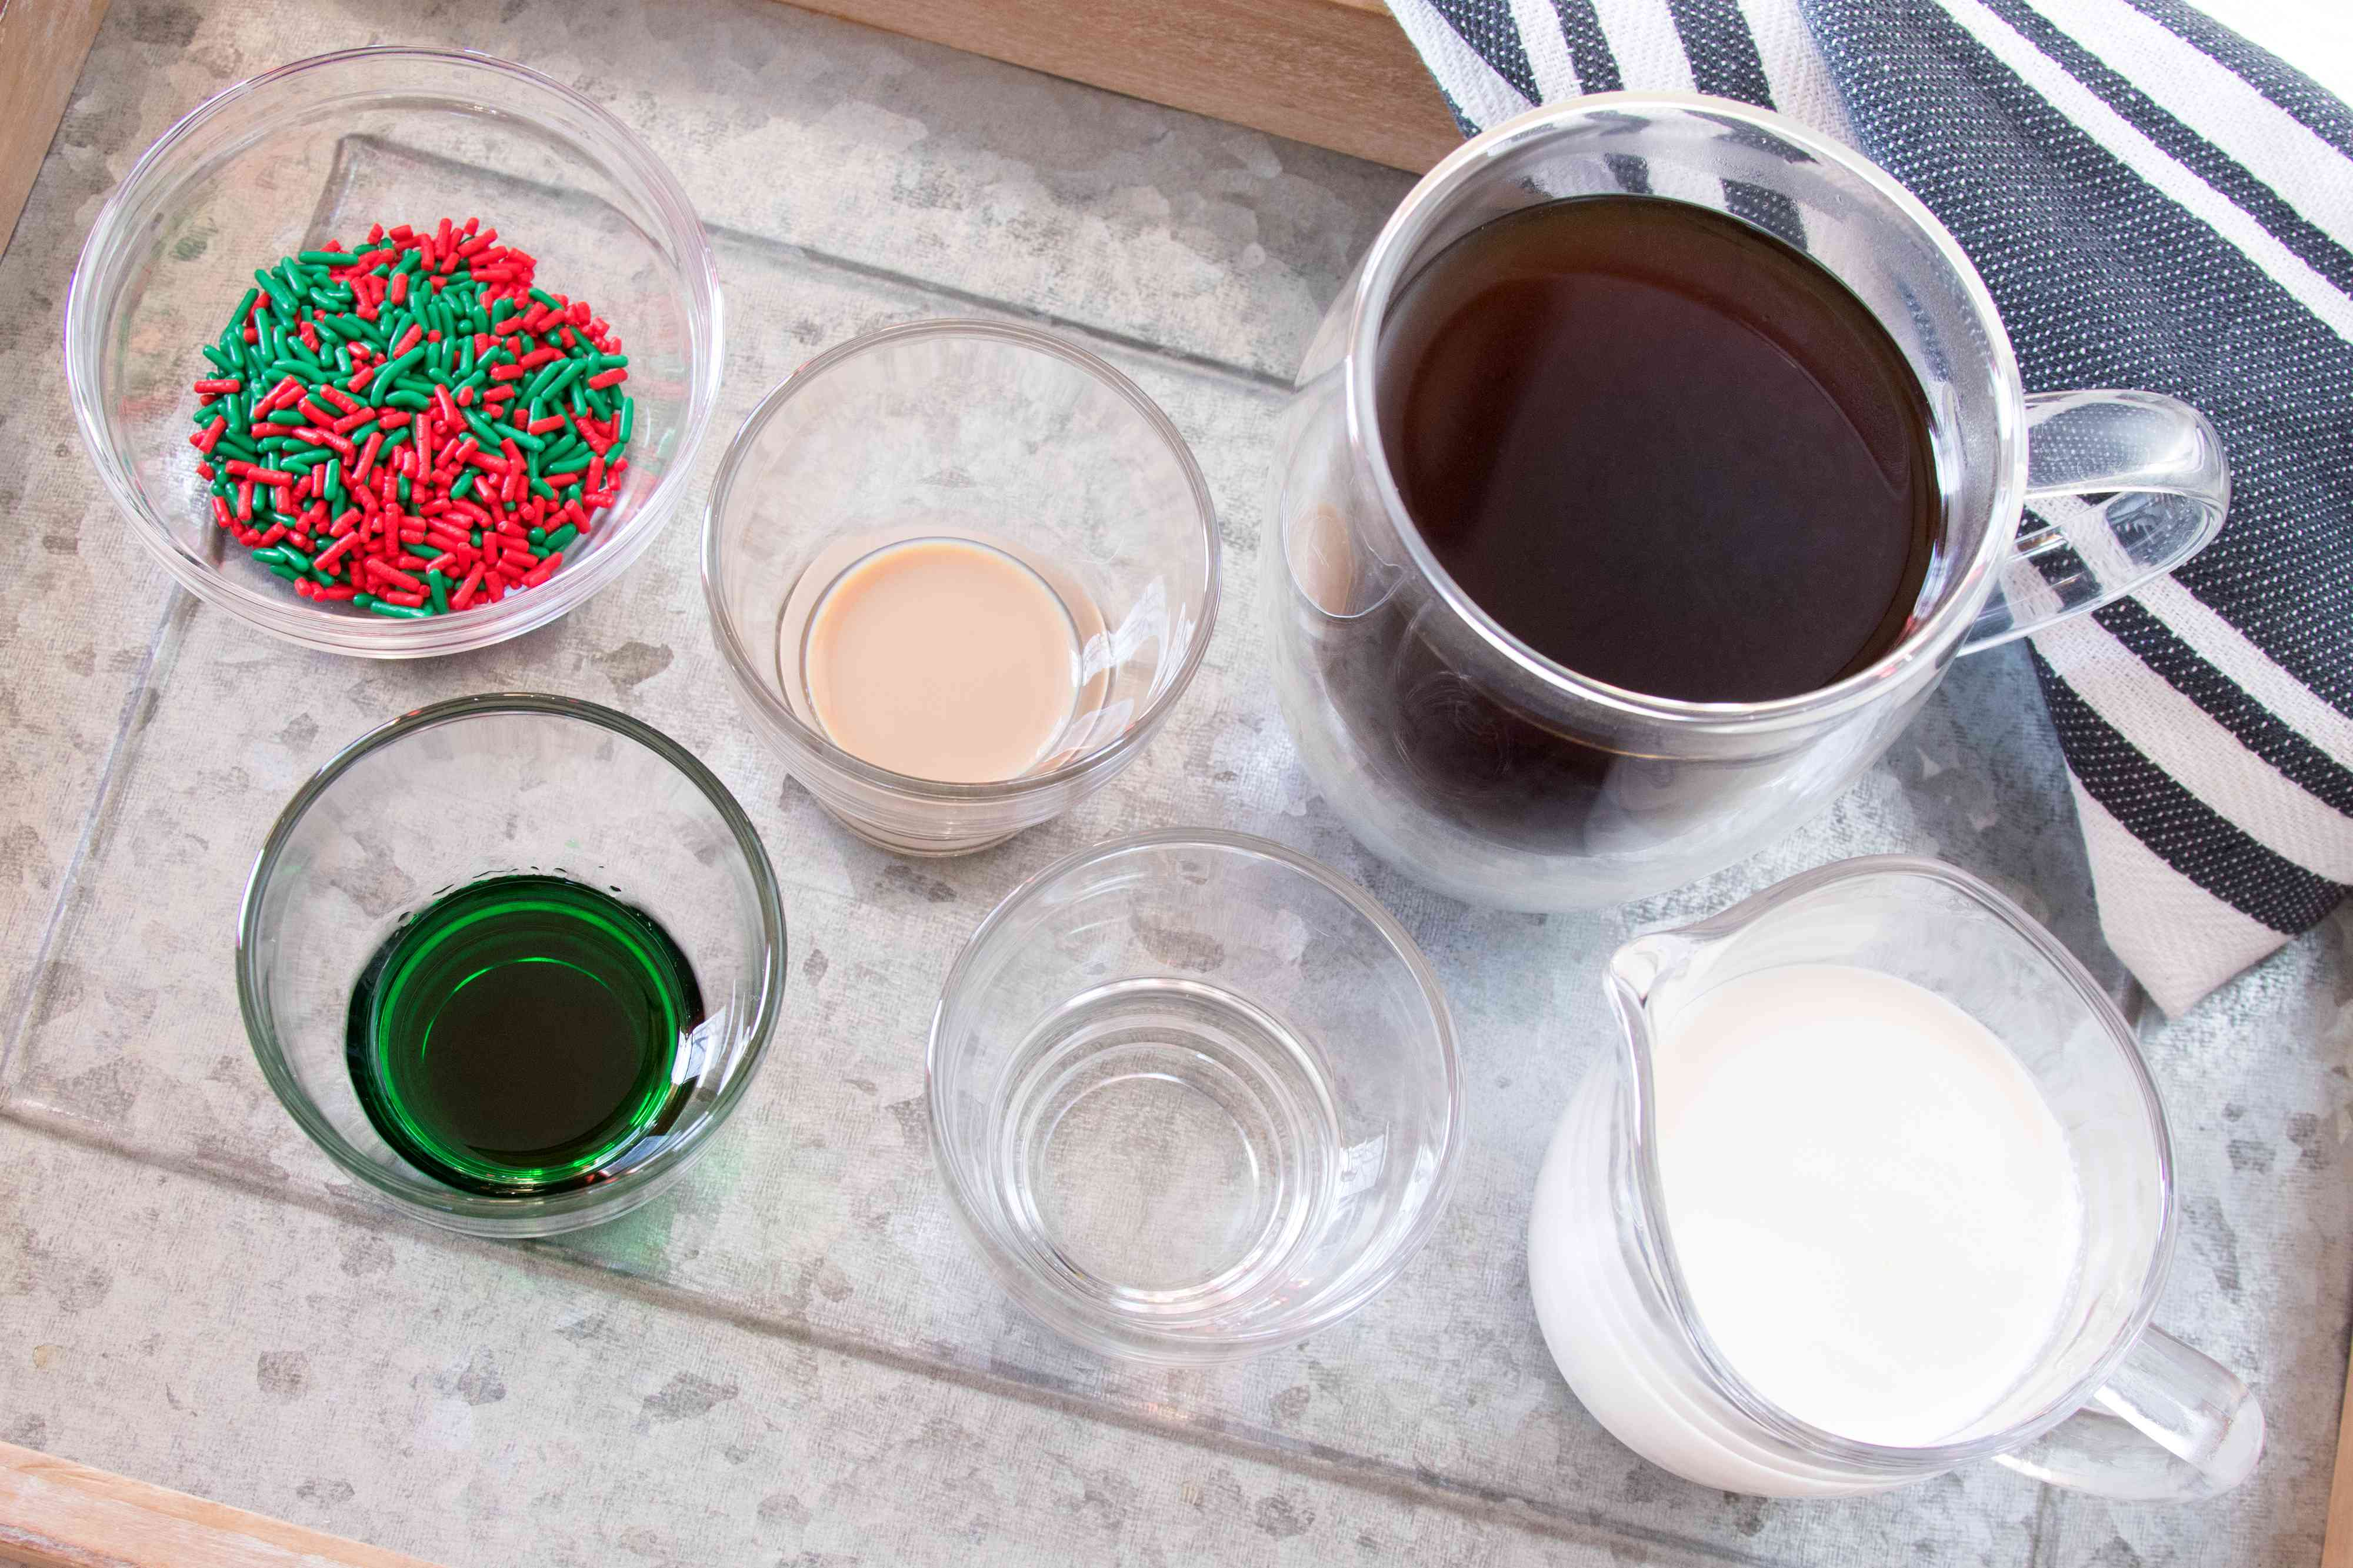 Ingredients for spiked Christmas coffee